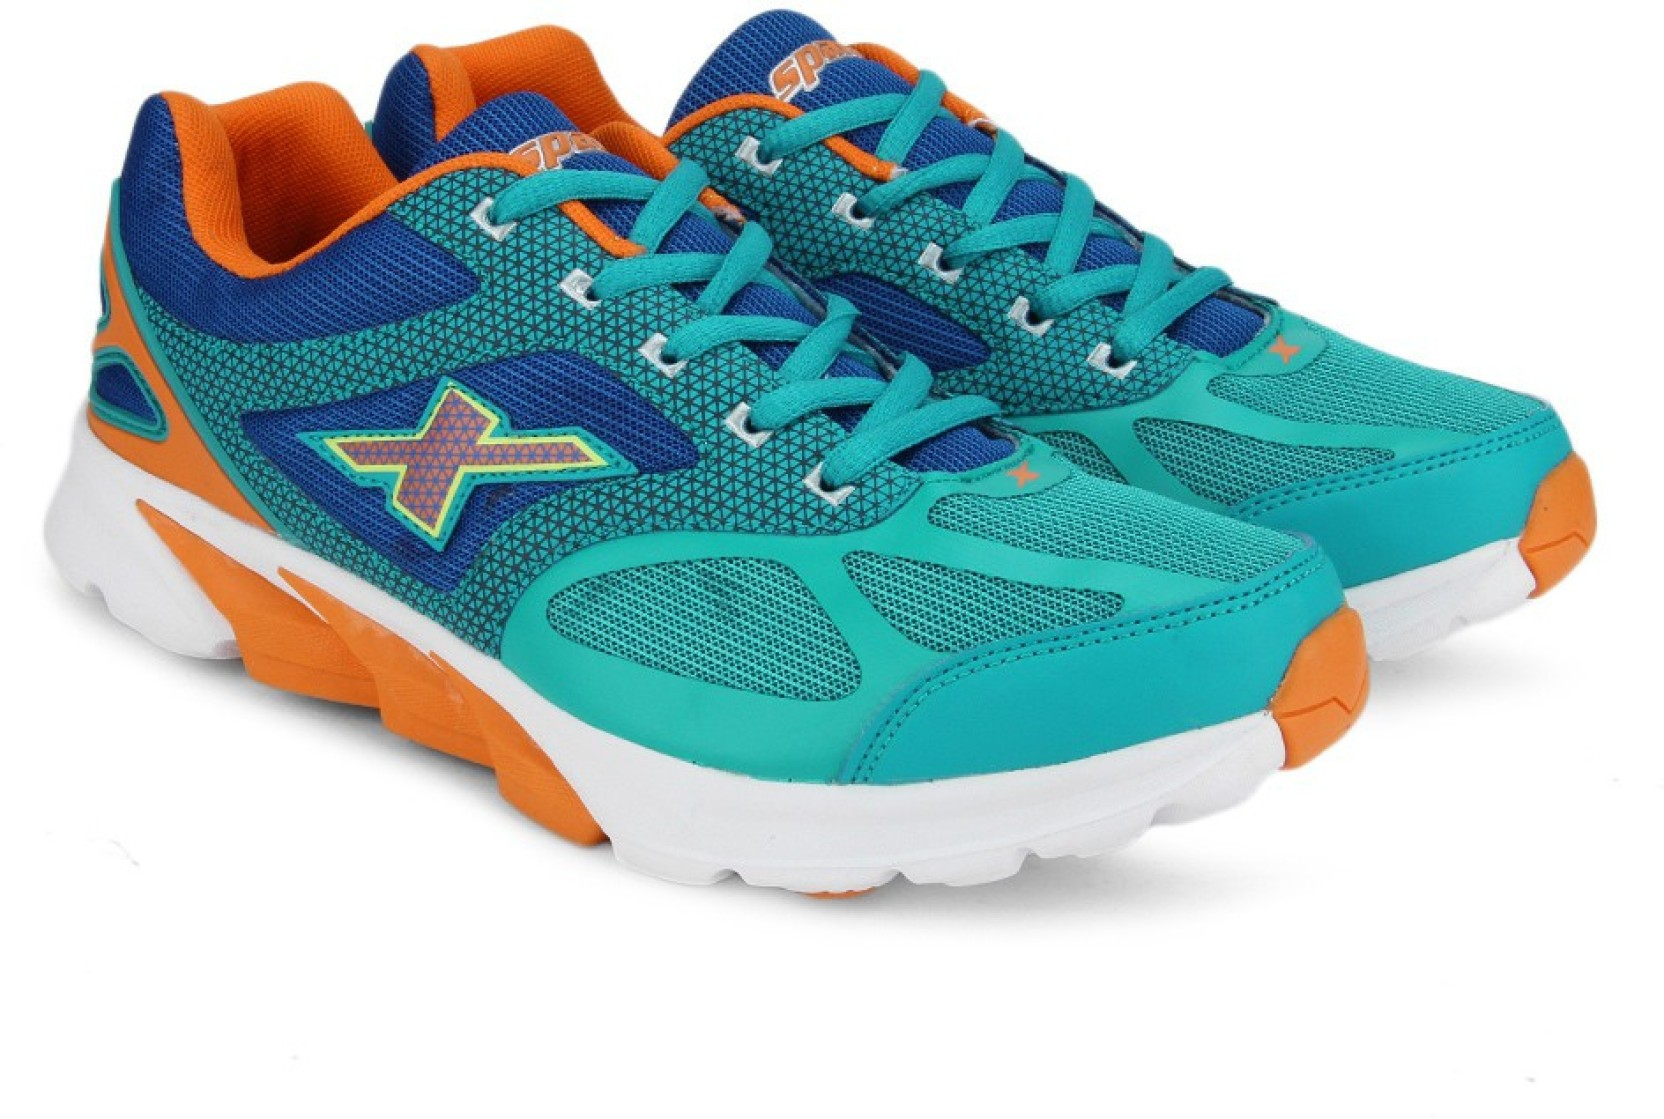 newest collection c683a 28fc3 Sparx Men Running Shoes For Men (Blue, Orange, White)